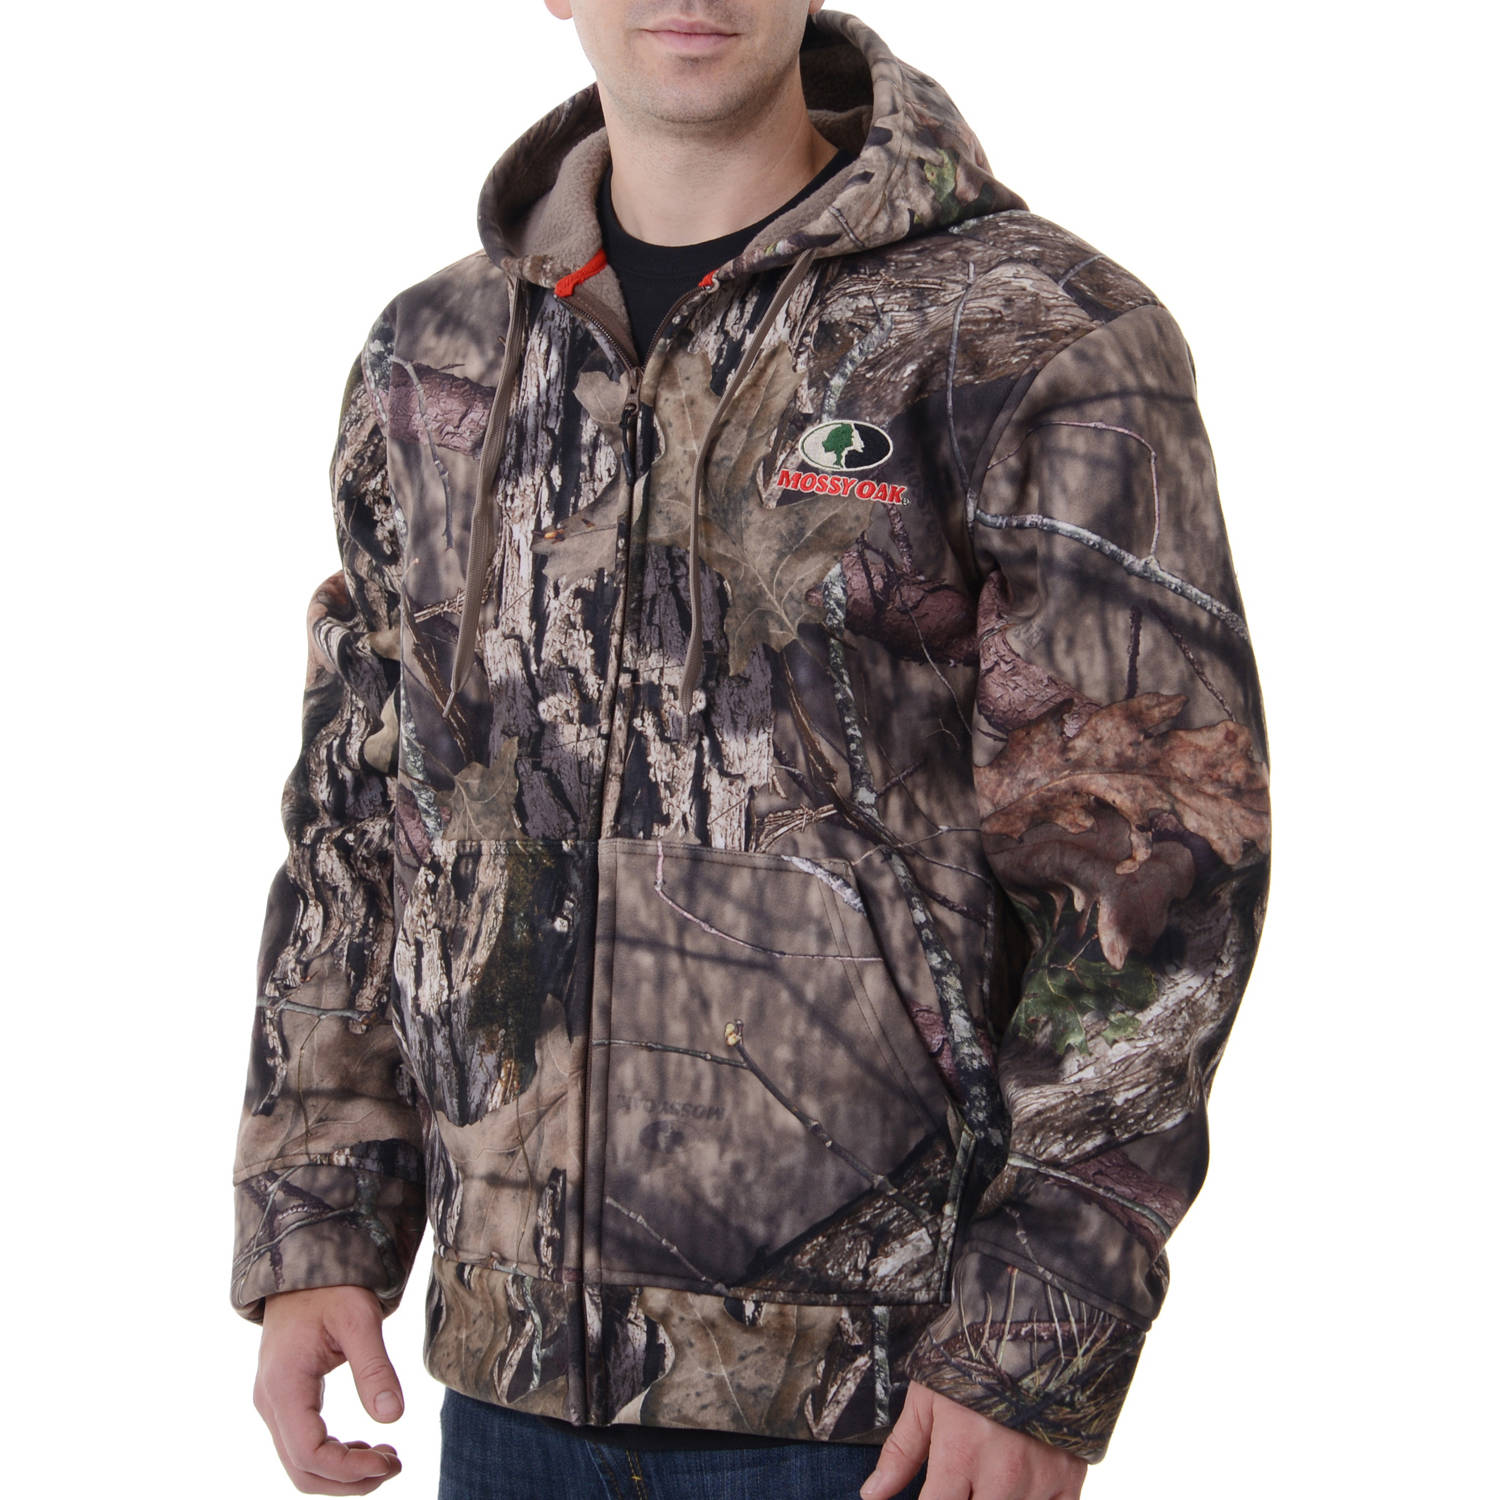 Realtree and Mossy Oak Men's Camo Heavyweight Sherpa Hoddie Jacket